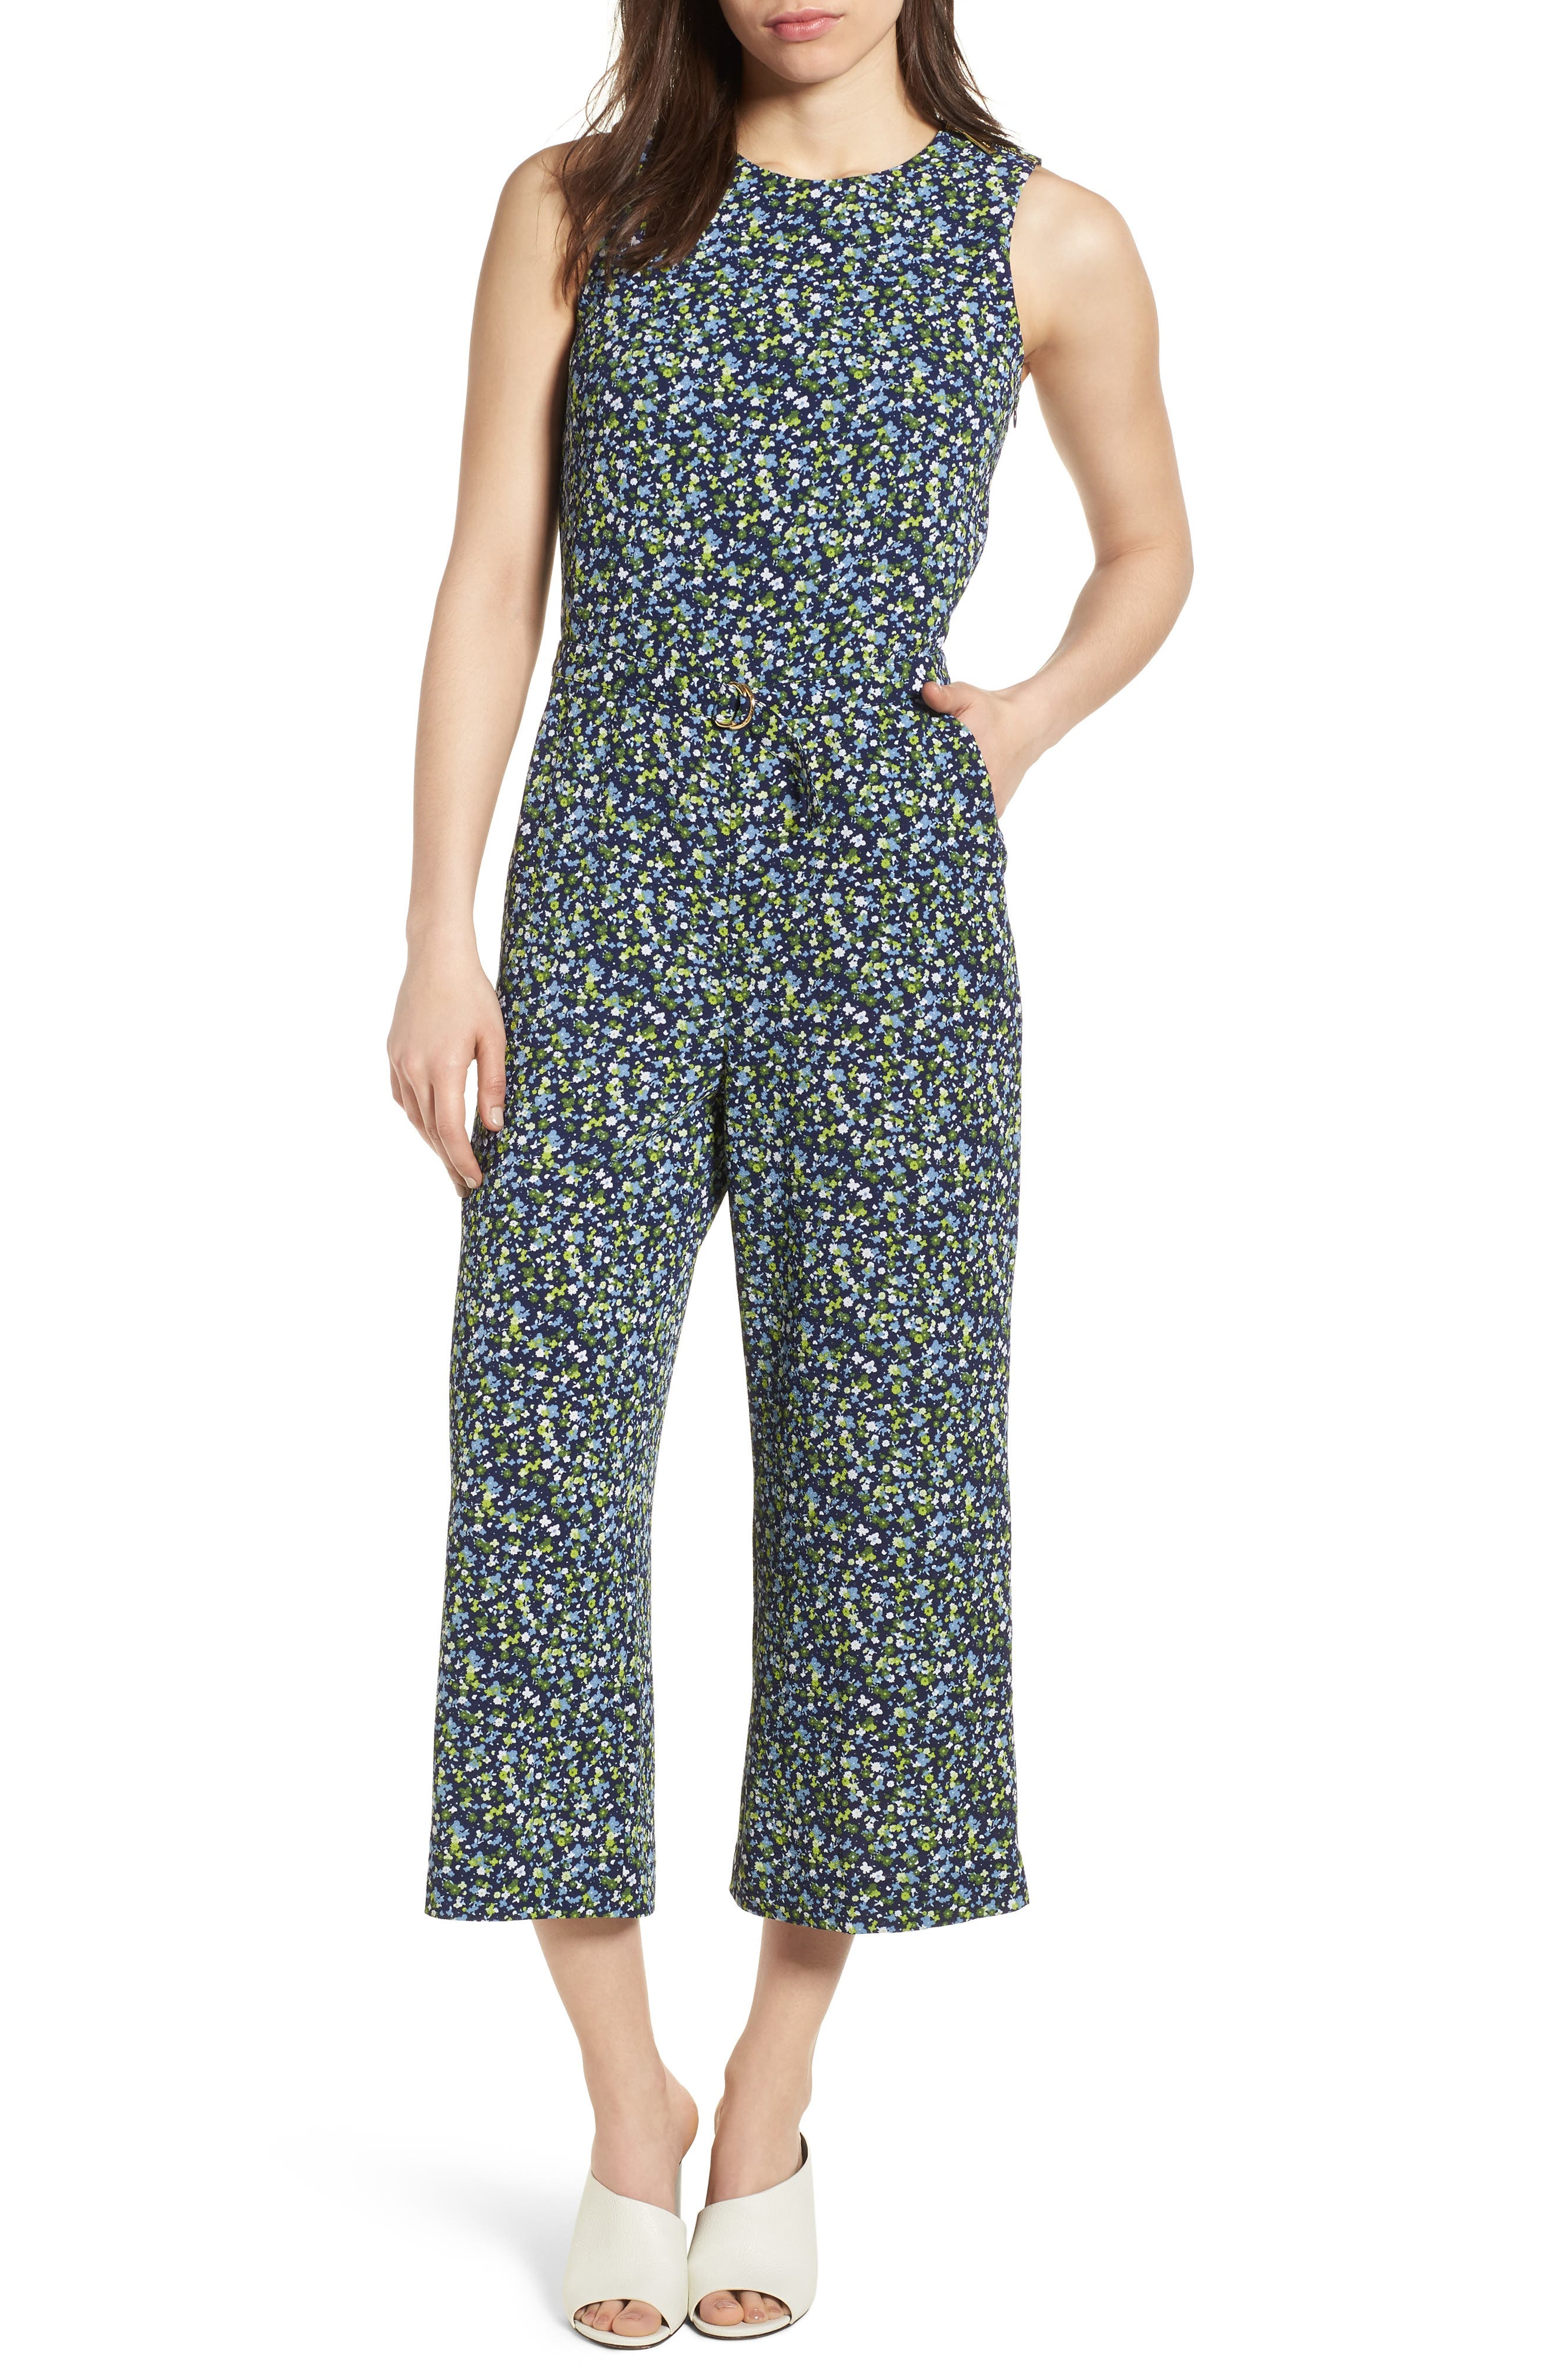 Wildflower Print Jumpsuit,                         Main,                         color, 362